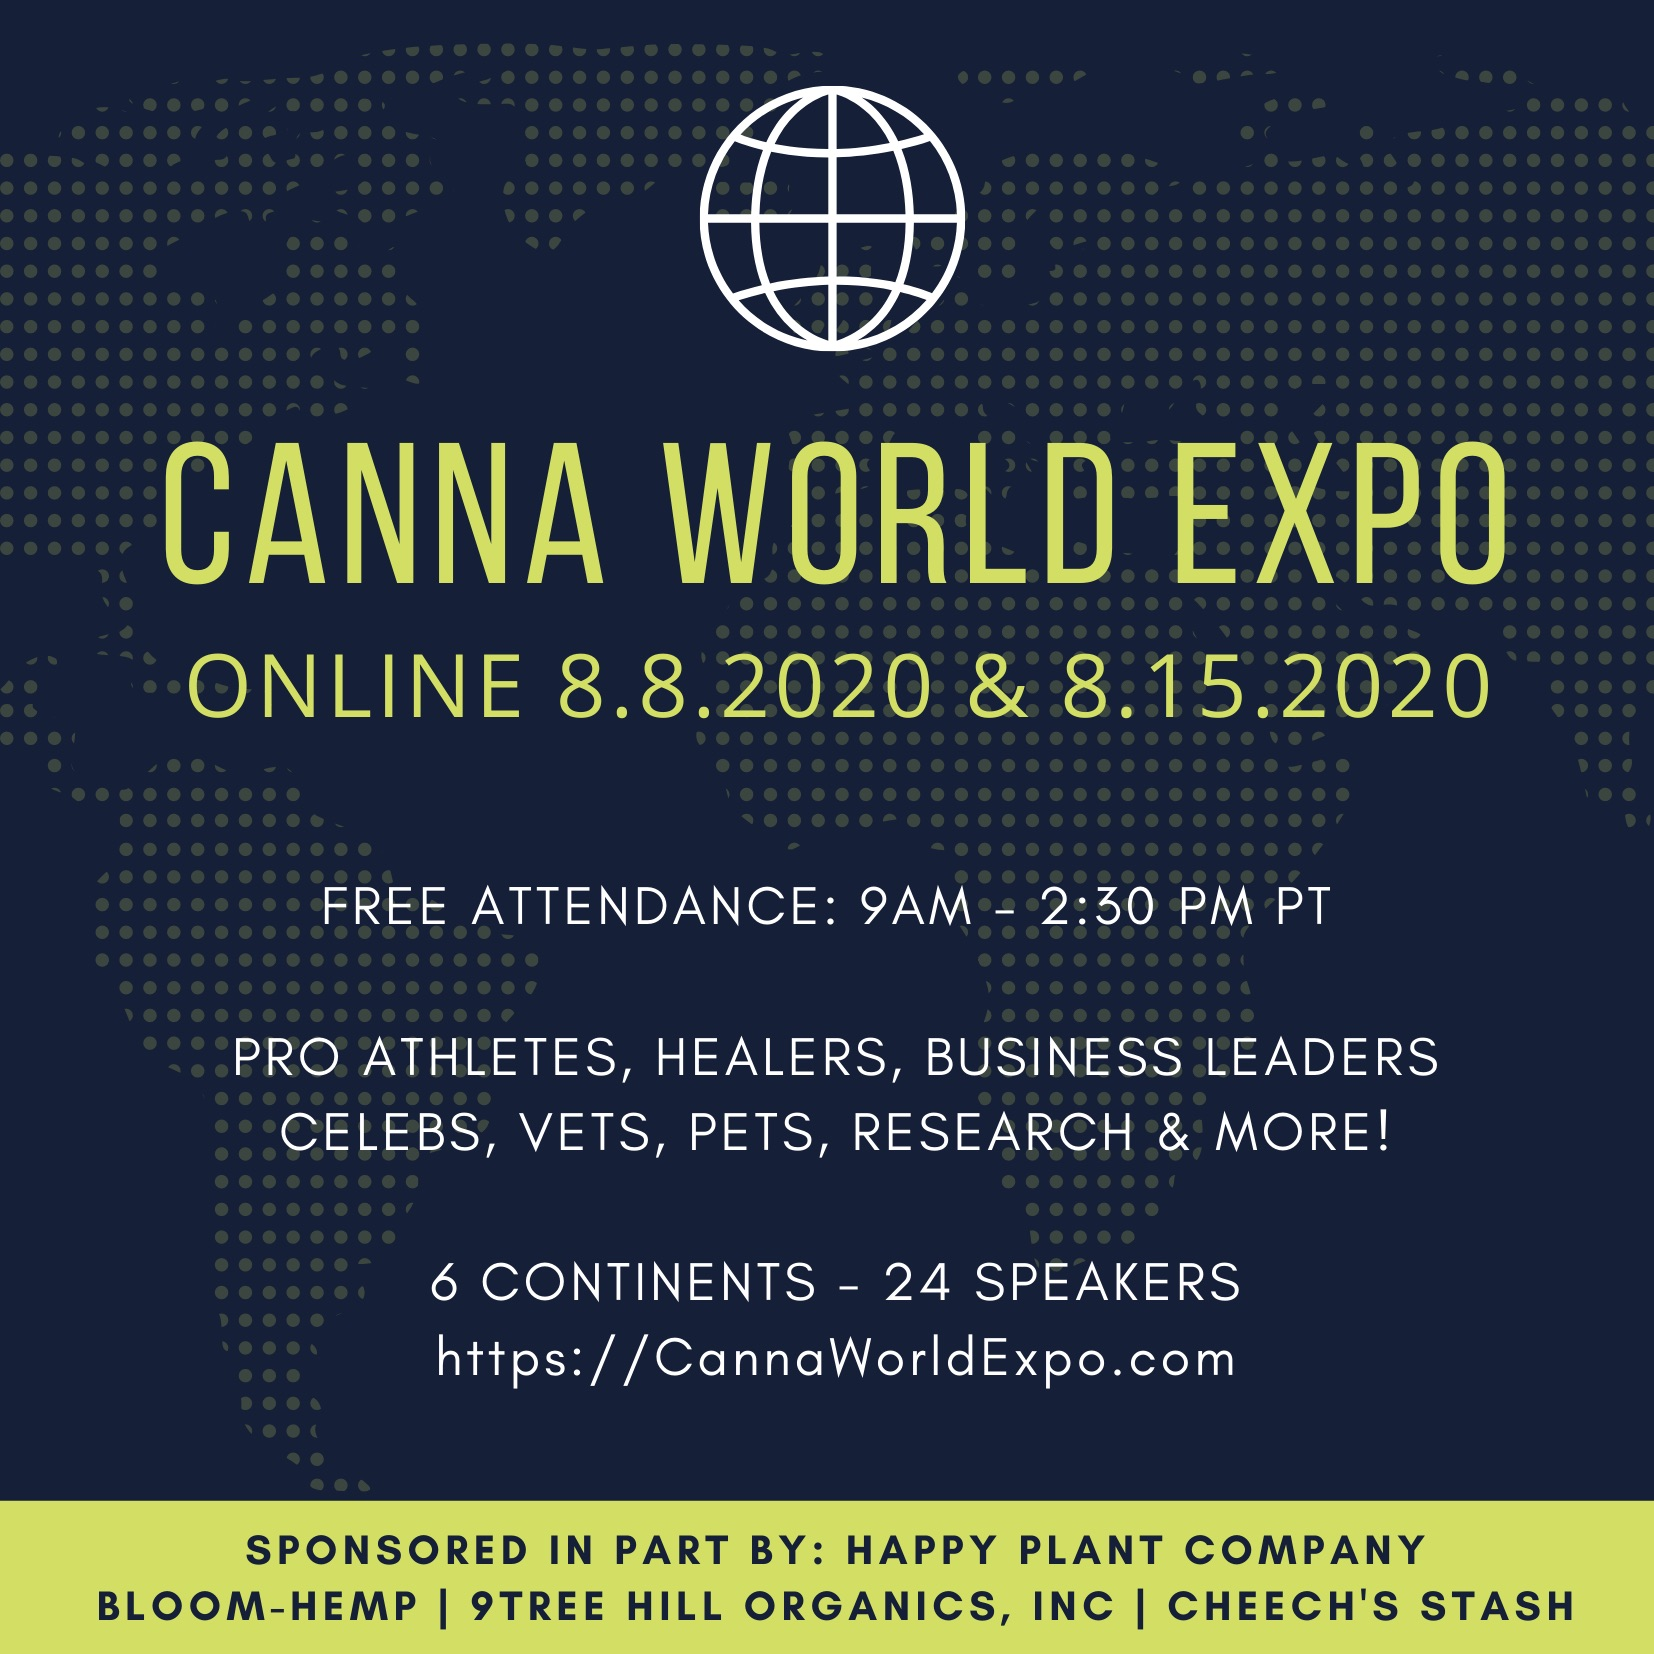 CANNA WORLD EXPO AUGUST ONLINE SYMPOSIUM